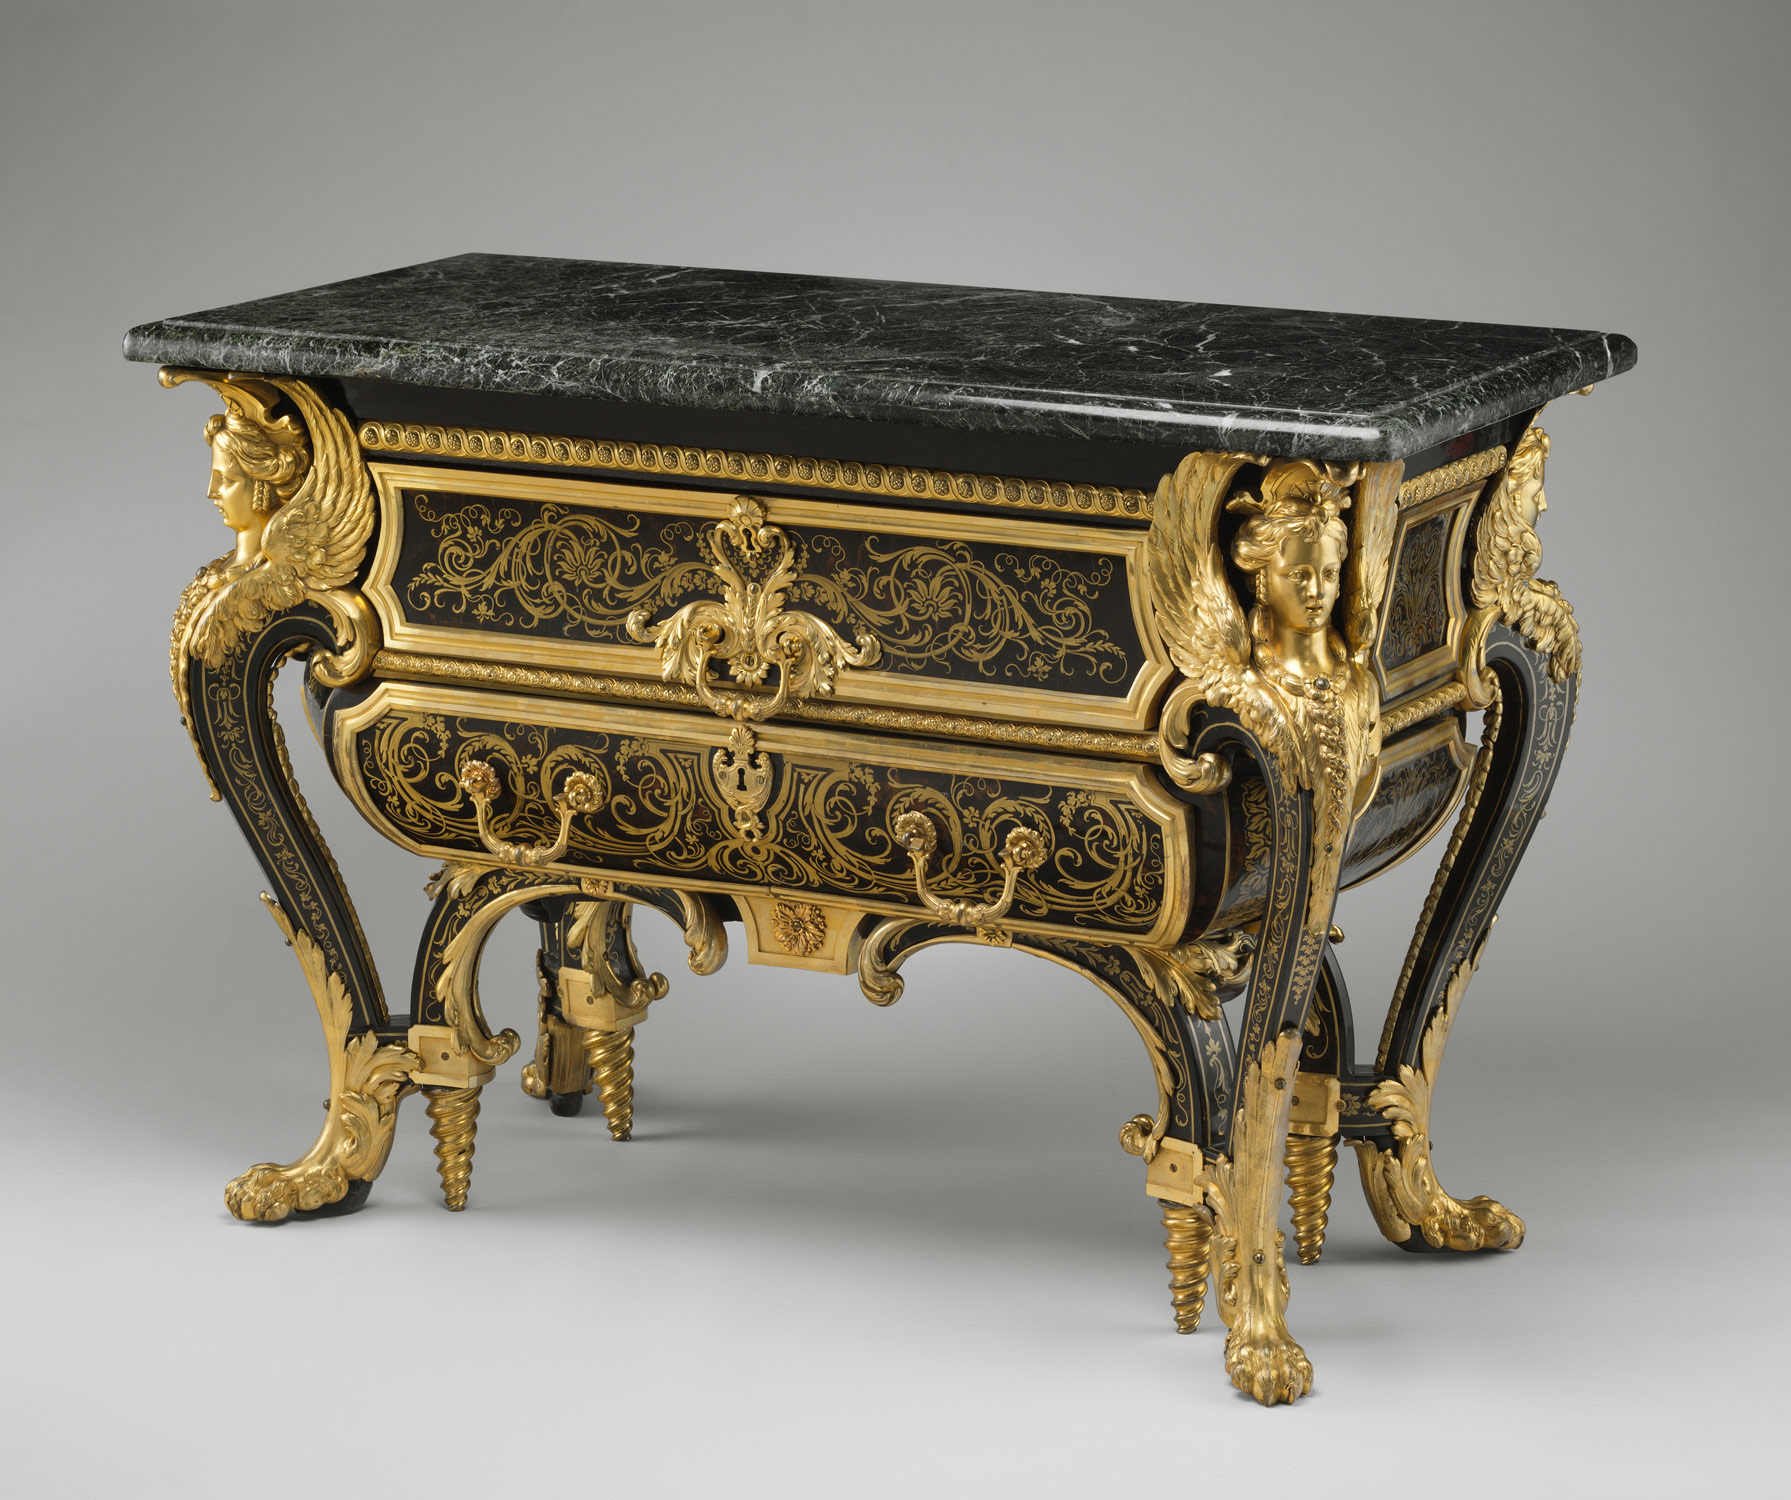 Furnishings During The Reign Of Louis XIV 1654 1715